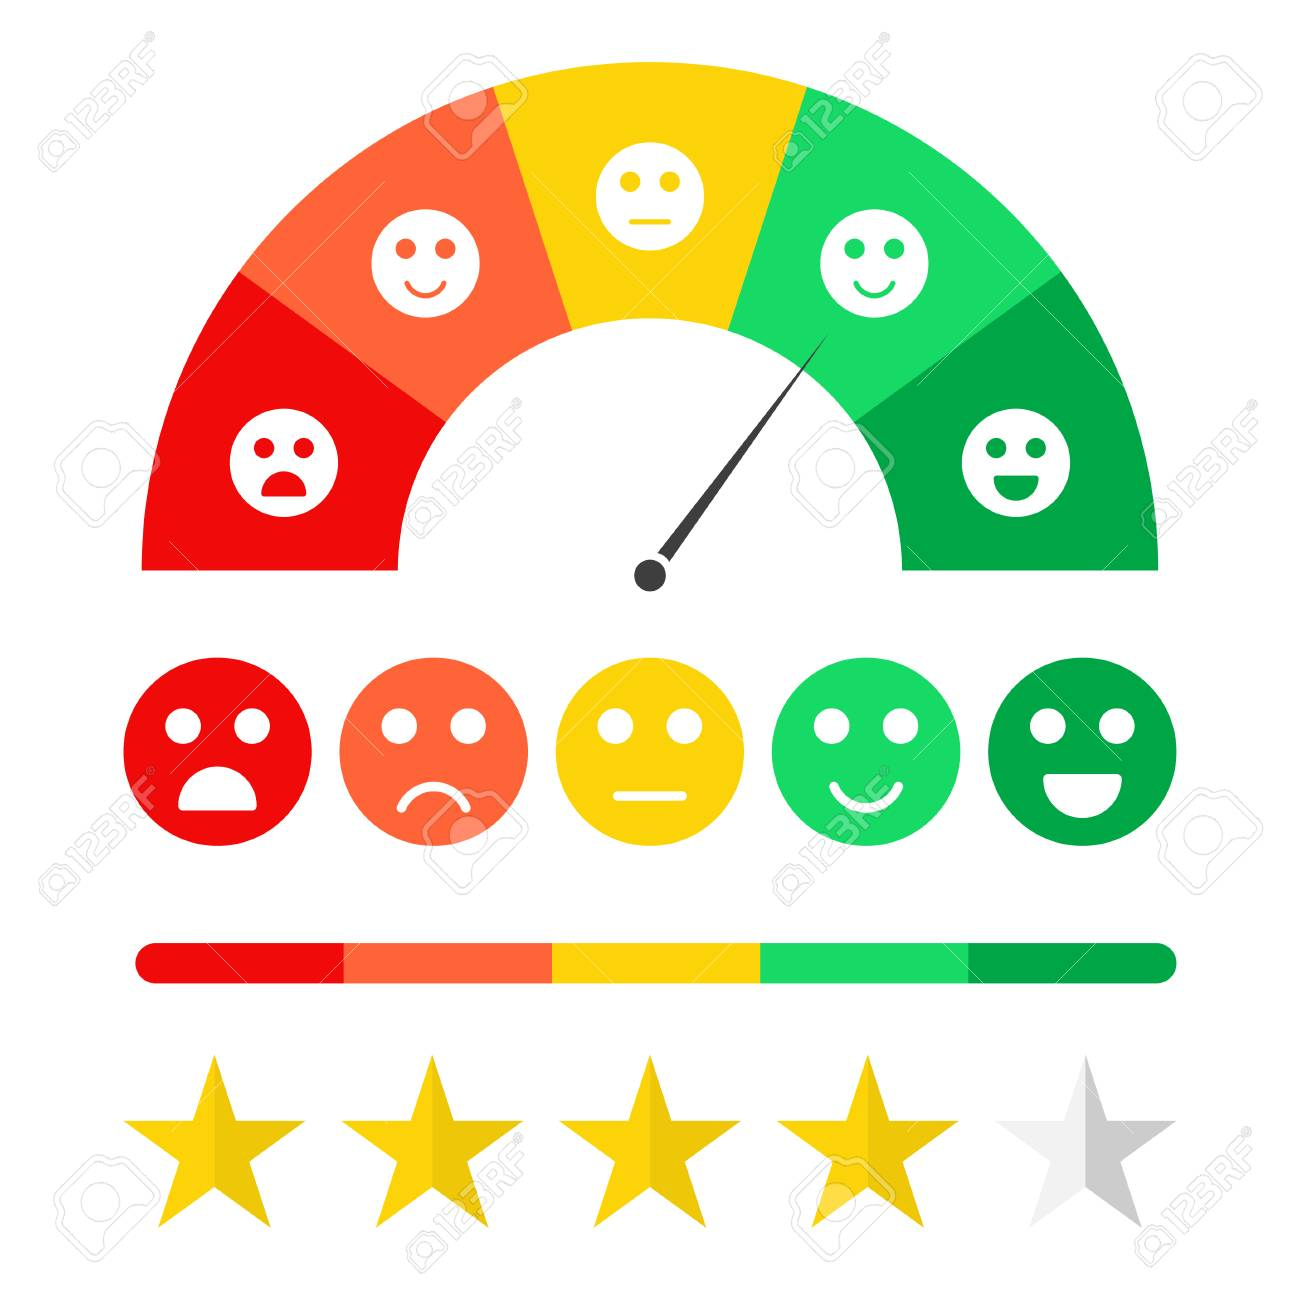 Customer feedback concept. Emoticon scale and rating satisfaction.